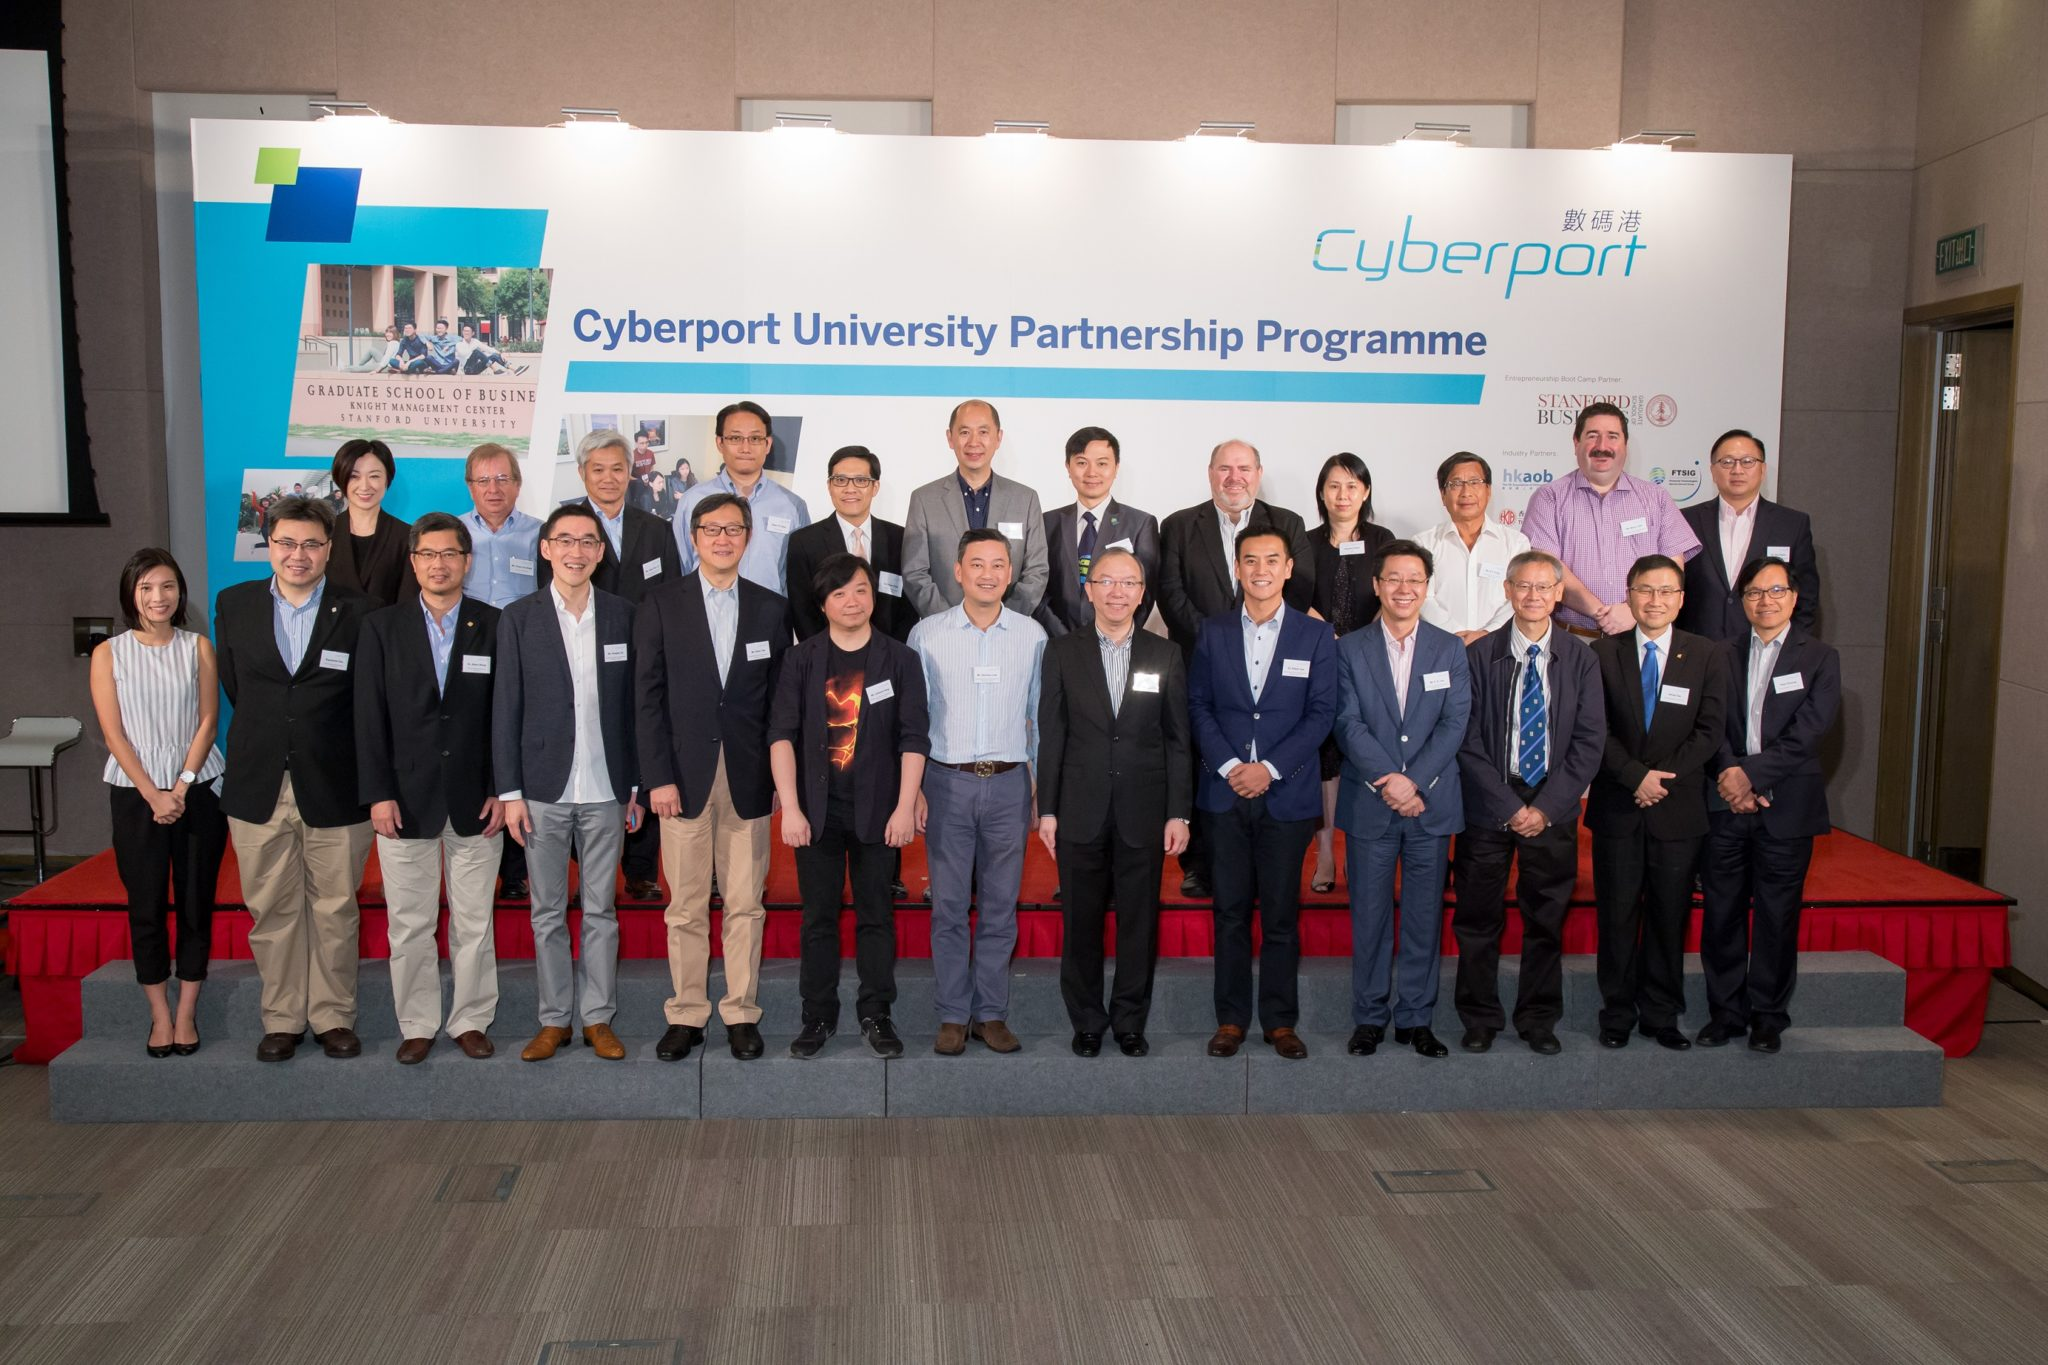 To inspire and nurture young digital tech and entrepreneurial talents, Cyberport officiated the launch of the Cyberport University Partnership Programme (CUPP) 2016, a FinTech-focused programme in collaboration with Stanford Graduate School of Business (Stanford GSB). Mr Herman Lam (first row, middle), CEO of Cyberport, expressed his excitement of launching the programme to inspire the next generation and the increased number of participants in CUPP. Herman also looks forward to witnessing more students put their FinTech ideas into practice, and hope they treasure the opportunity to exchange ideas with overseas industry professionals.